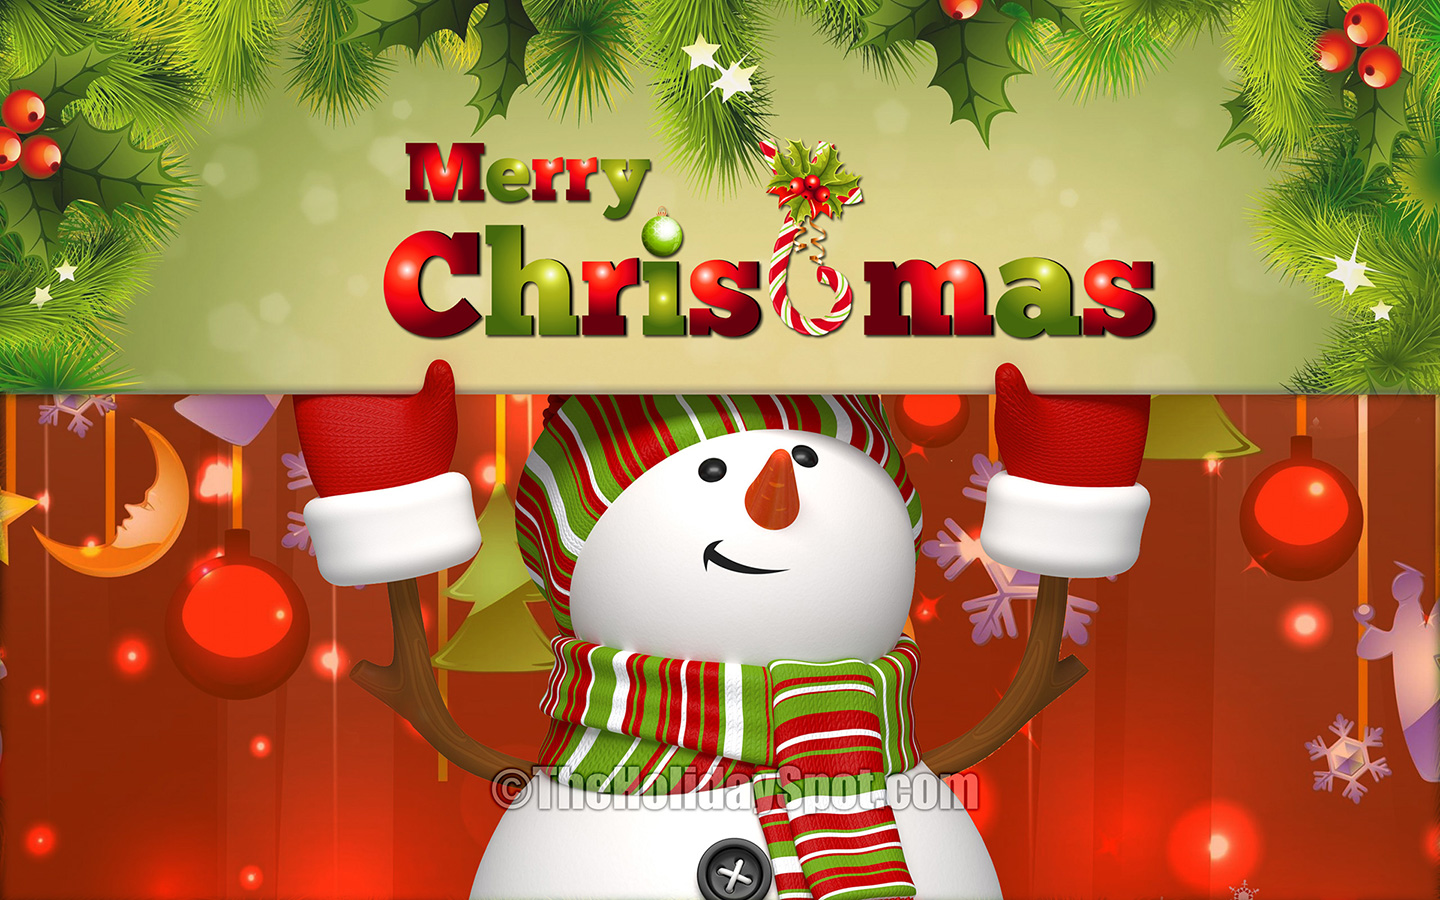 Free christmas wallpapers christmas images christmas - Anime merry christmas wallpaper ...